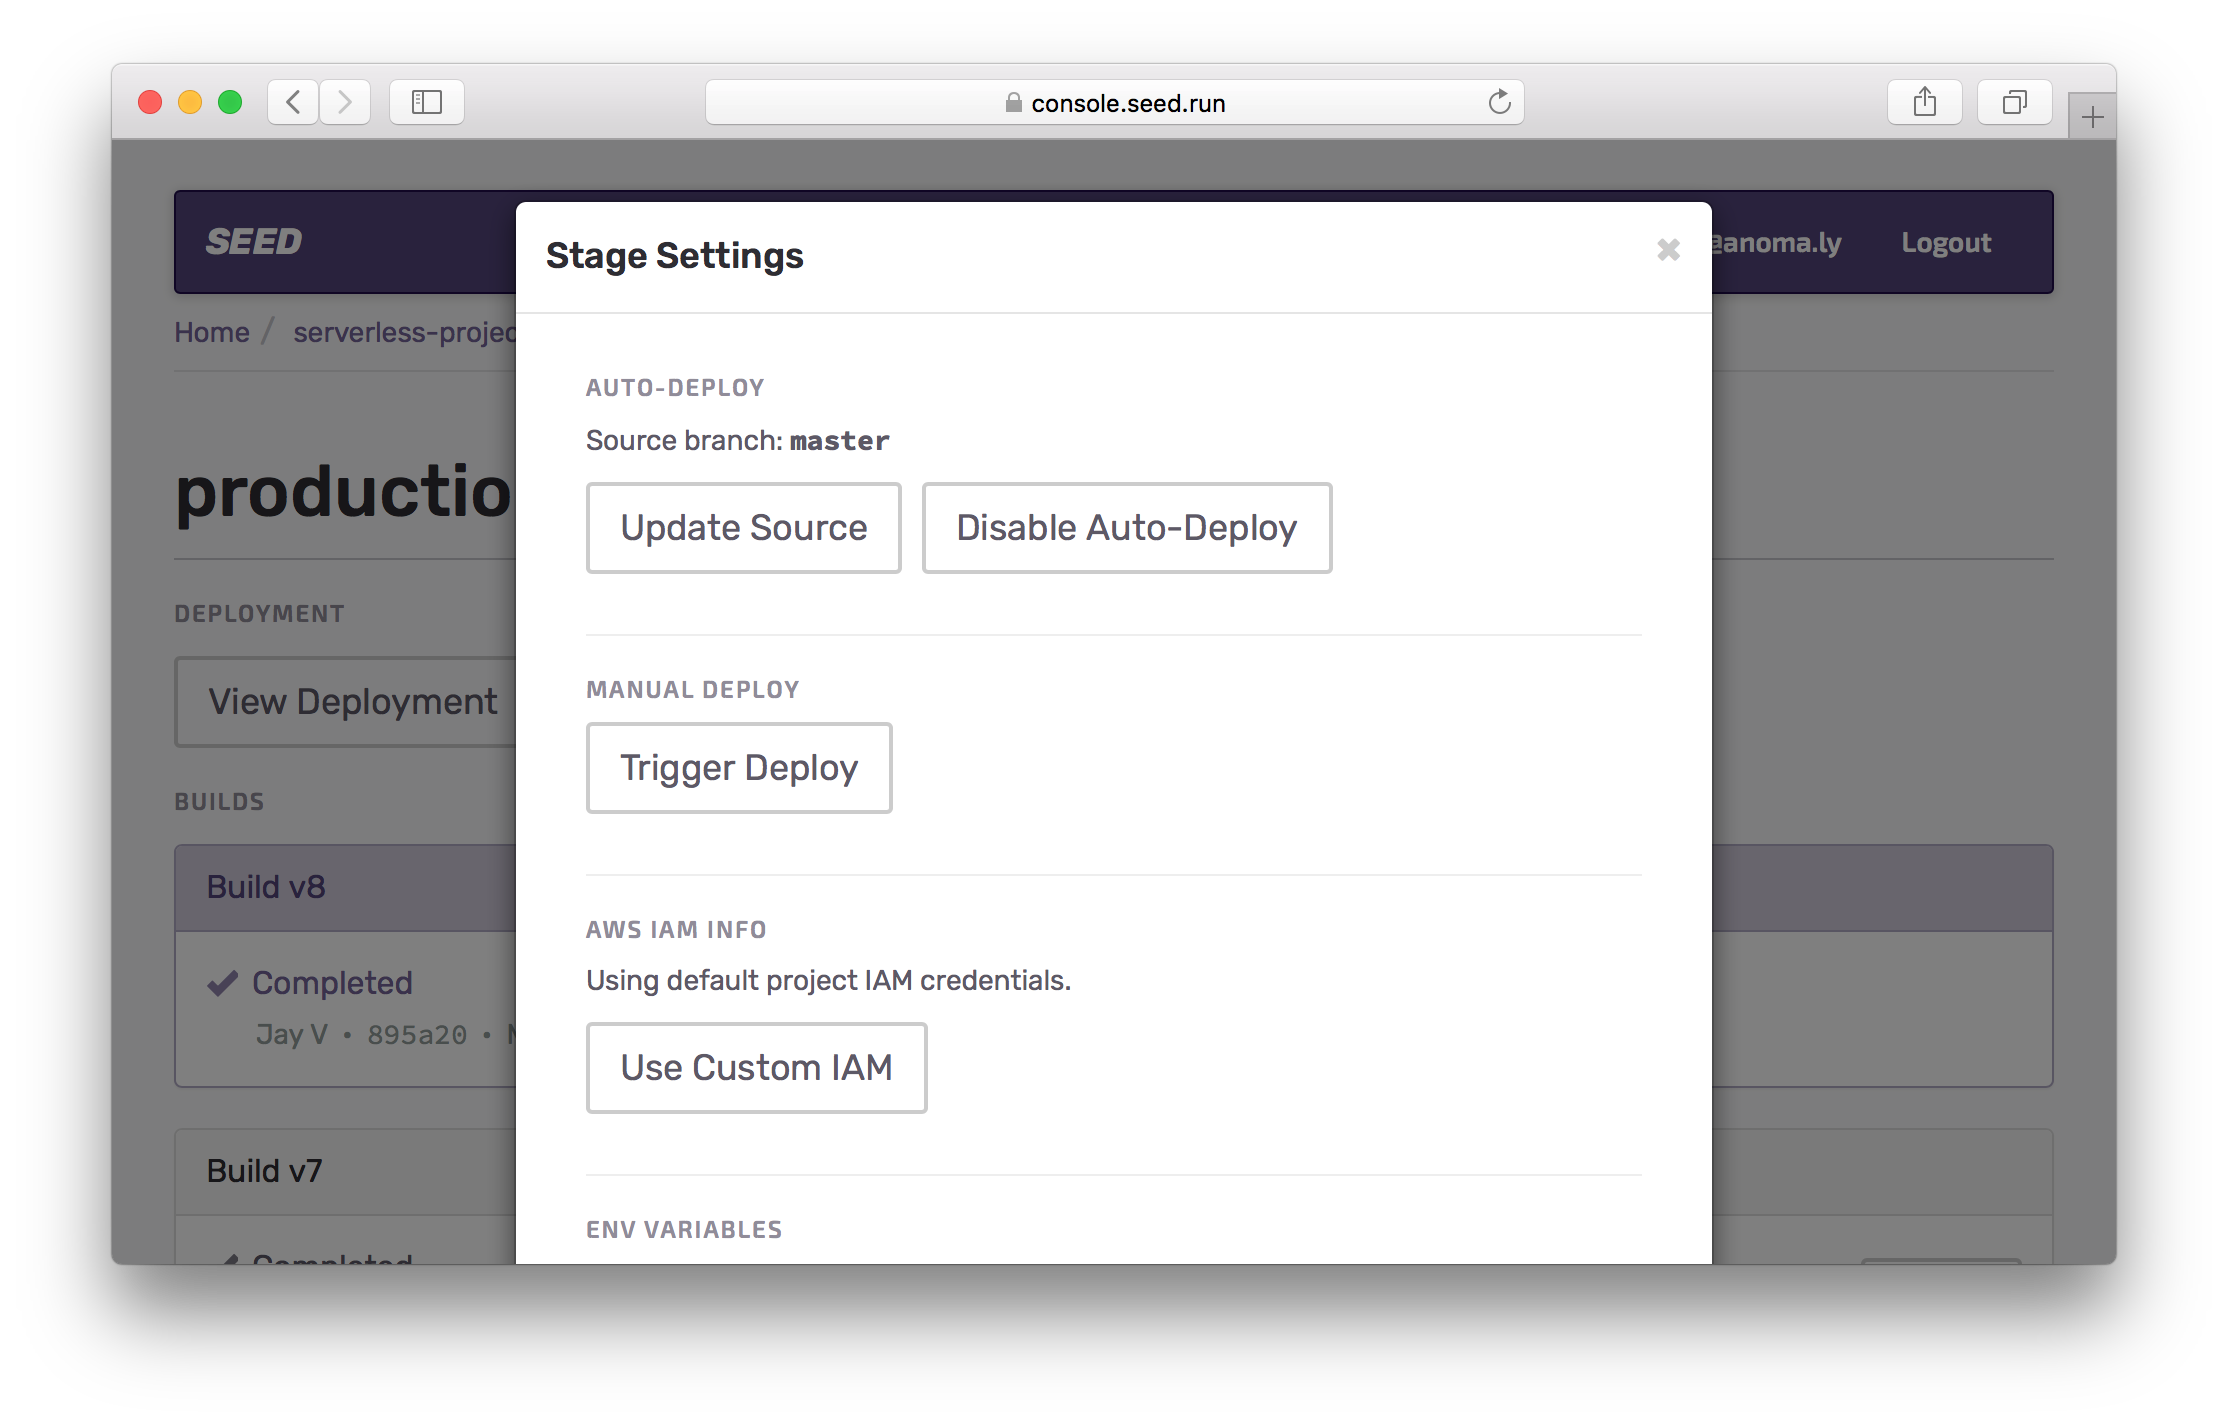 Disable auto-deploy for production